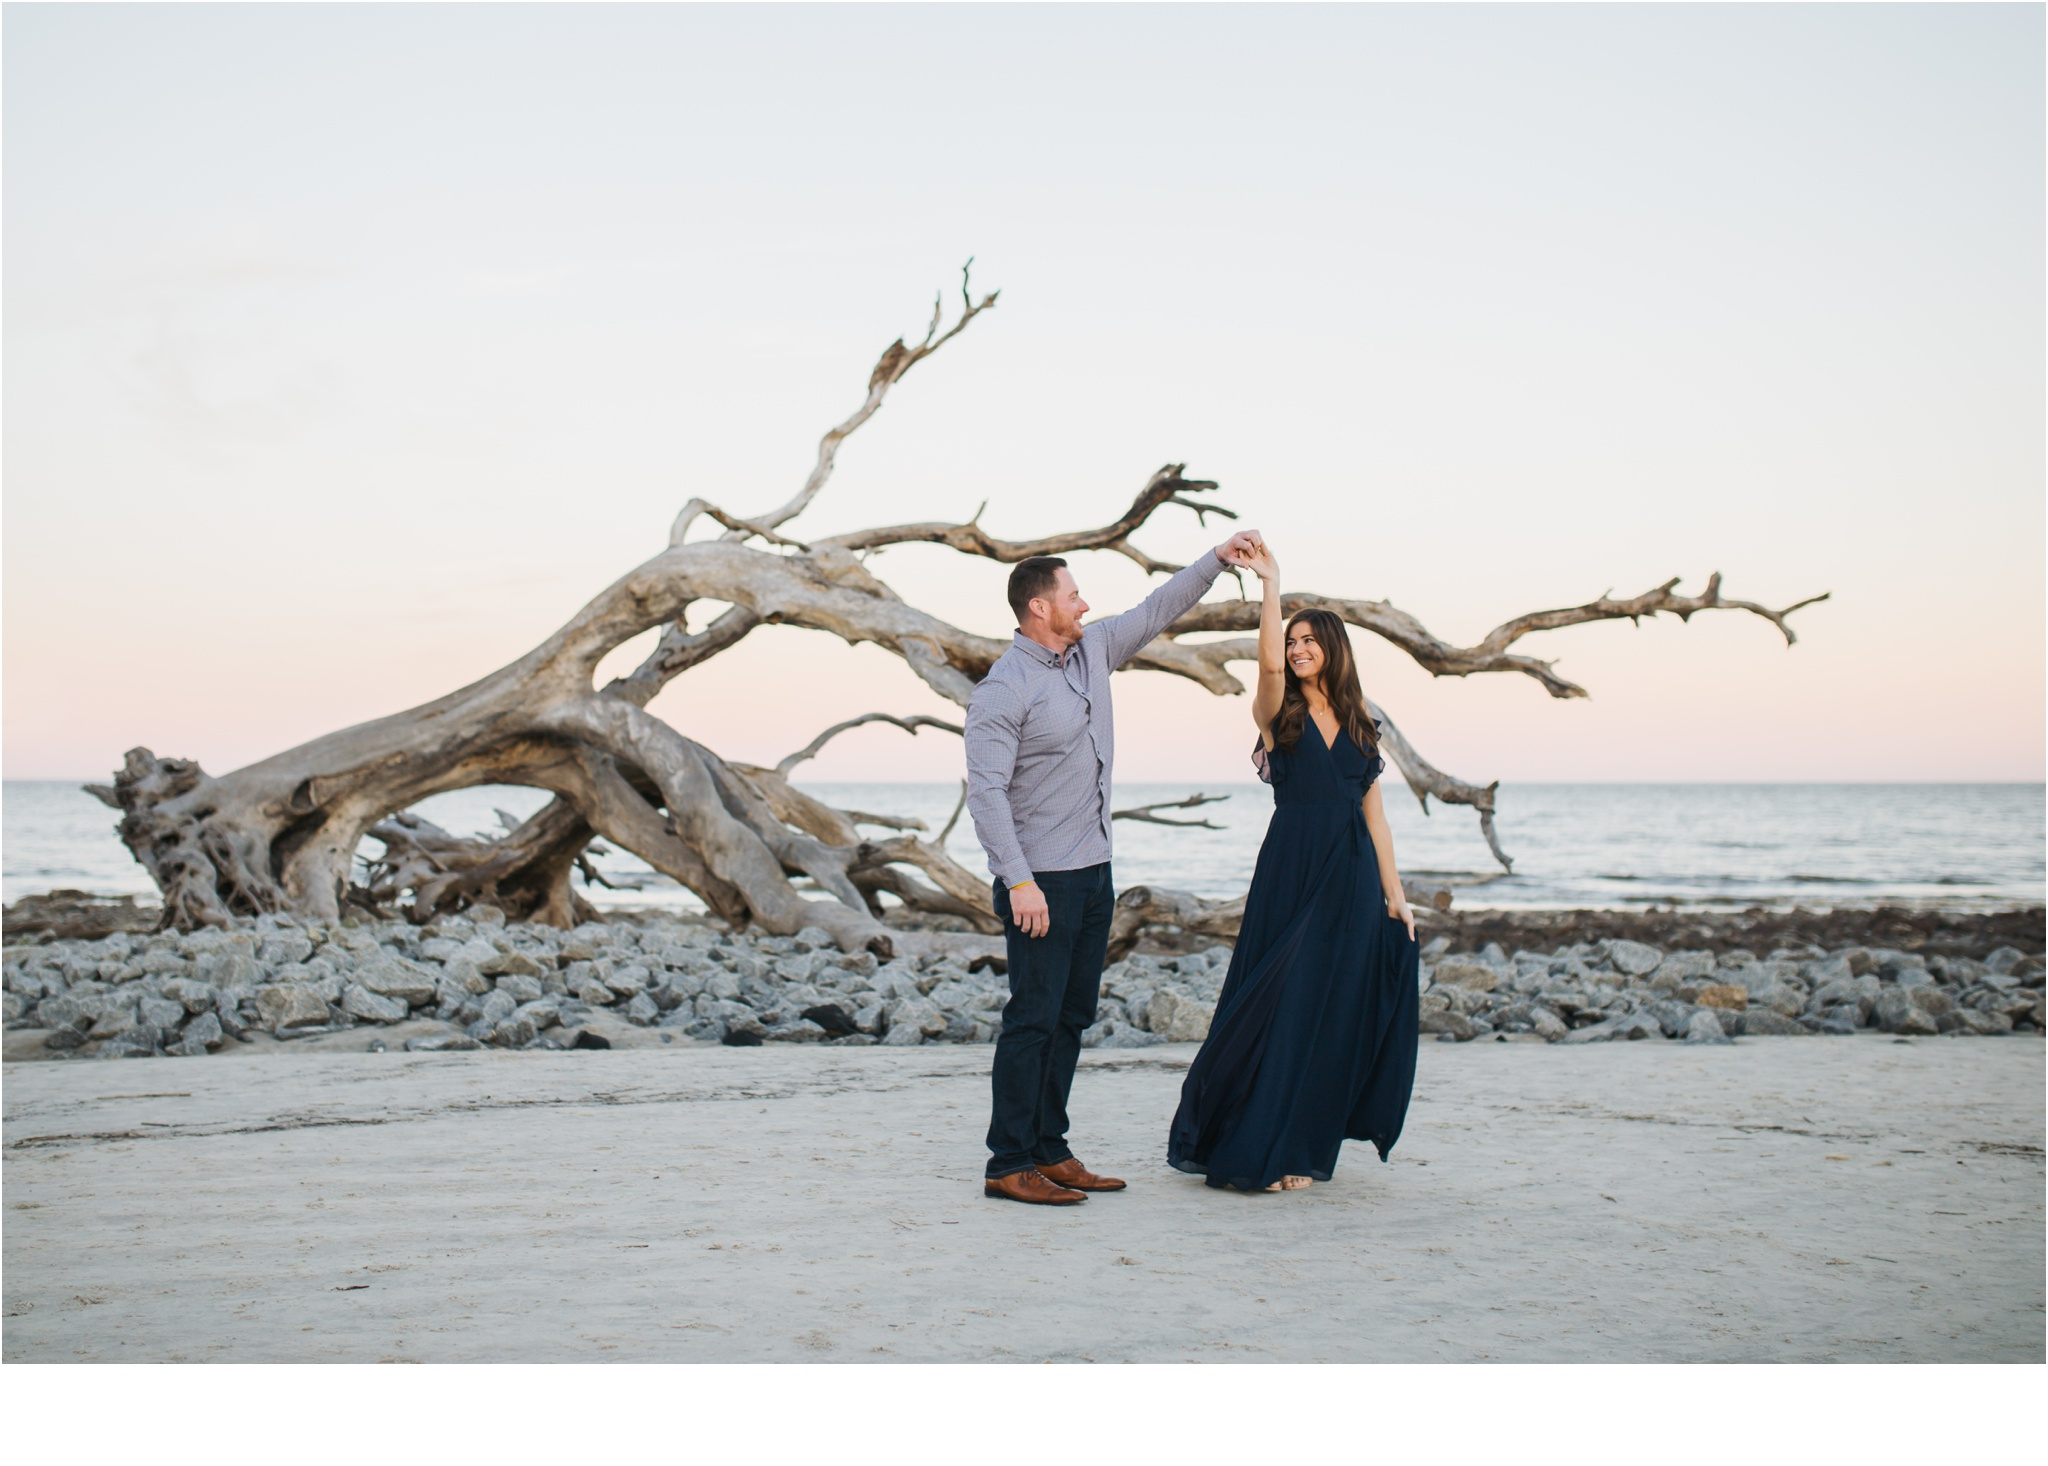 Rainey_Gregg_Photography_St._Simons_Island_Georgia_California_Wedding_Portrait_Photography_1553.jpg